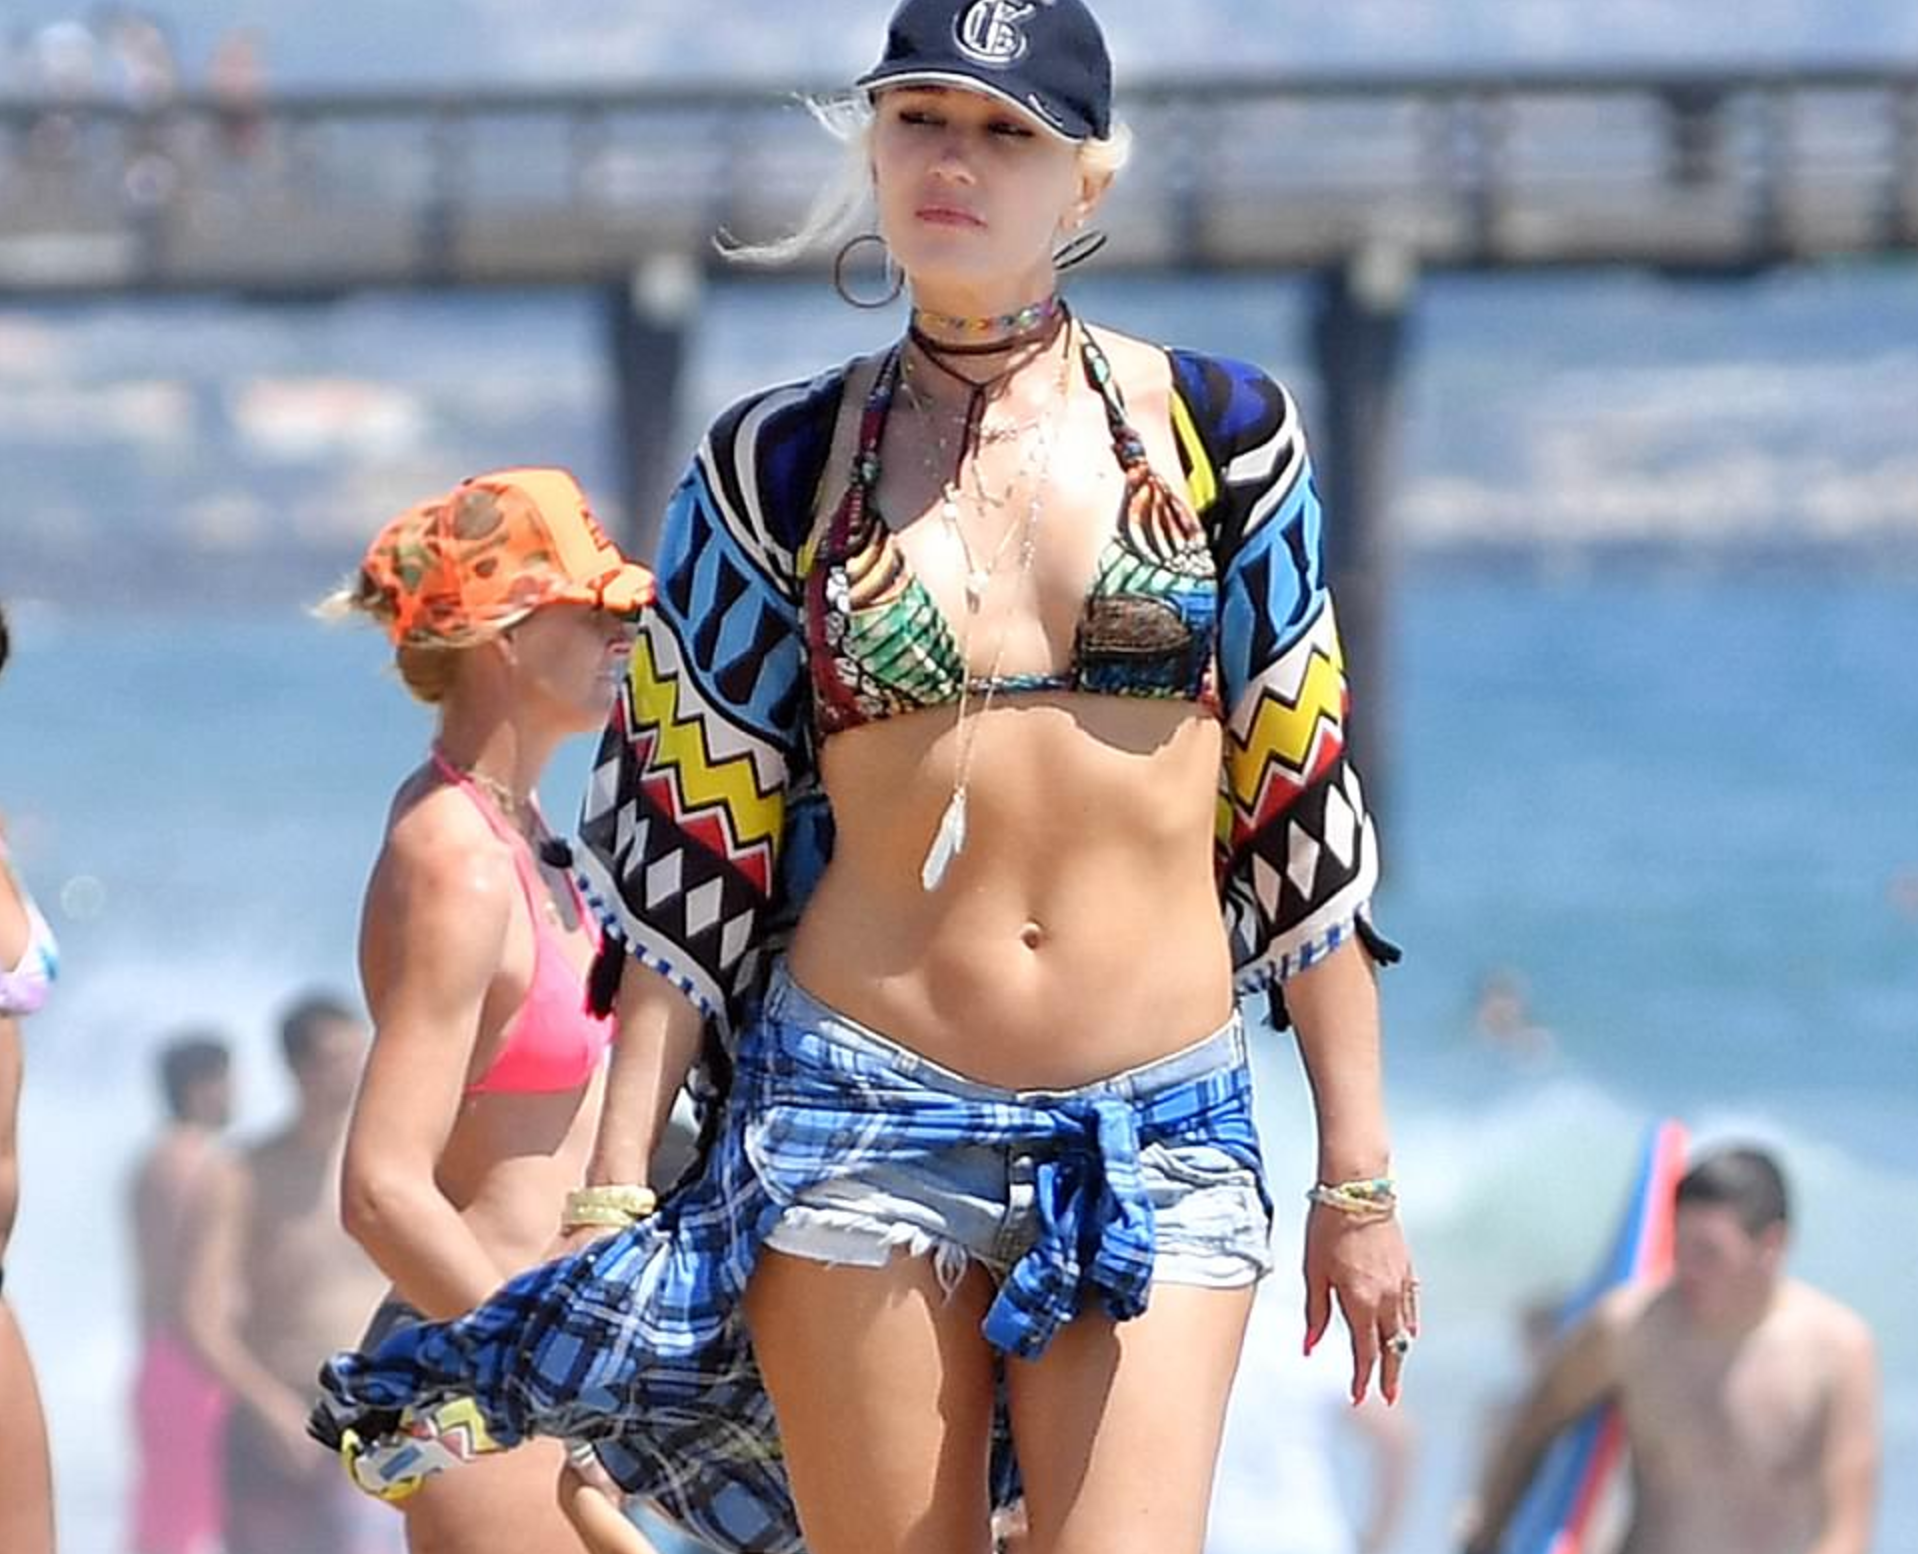 Gwen Stefani Hits the Beach in Vibrant Bikini and Teeny Daisy Dukes